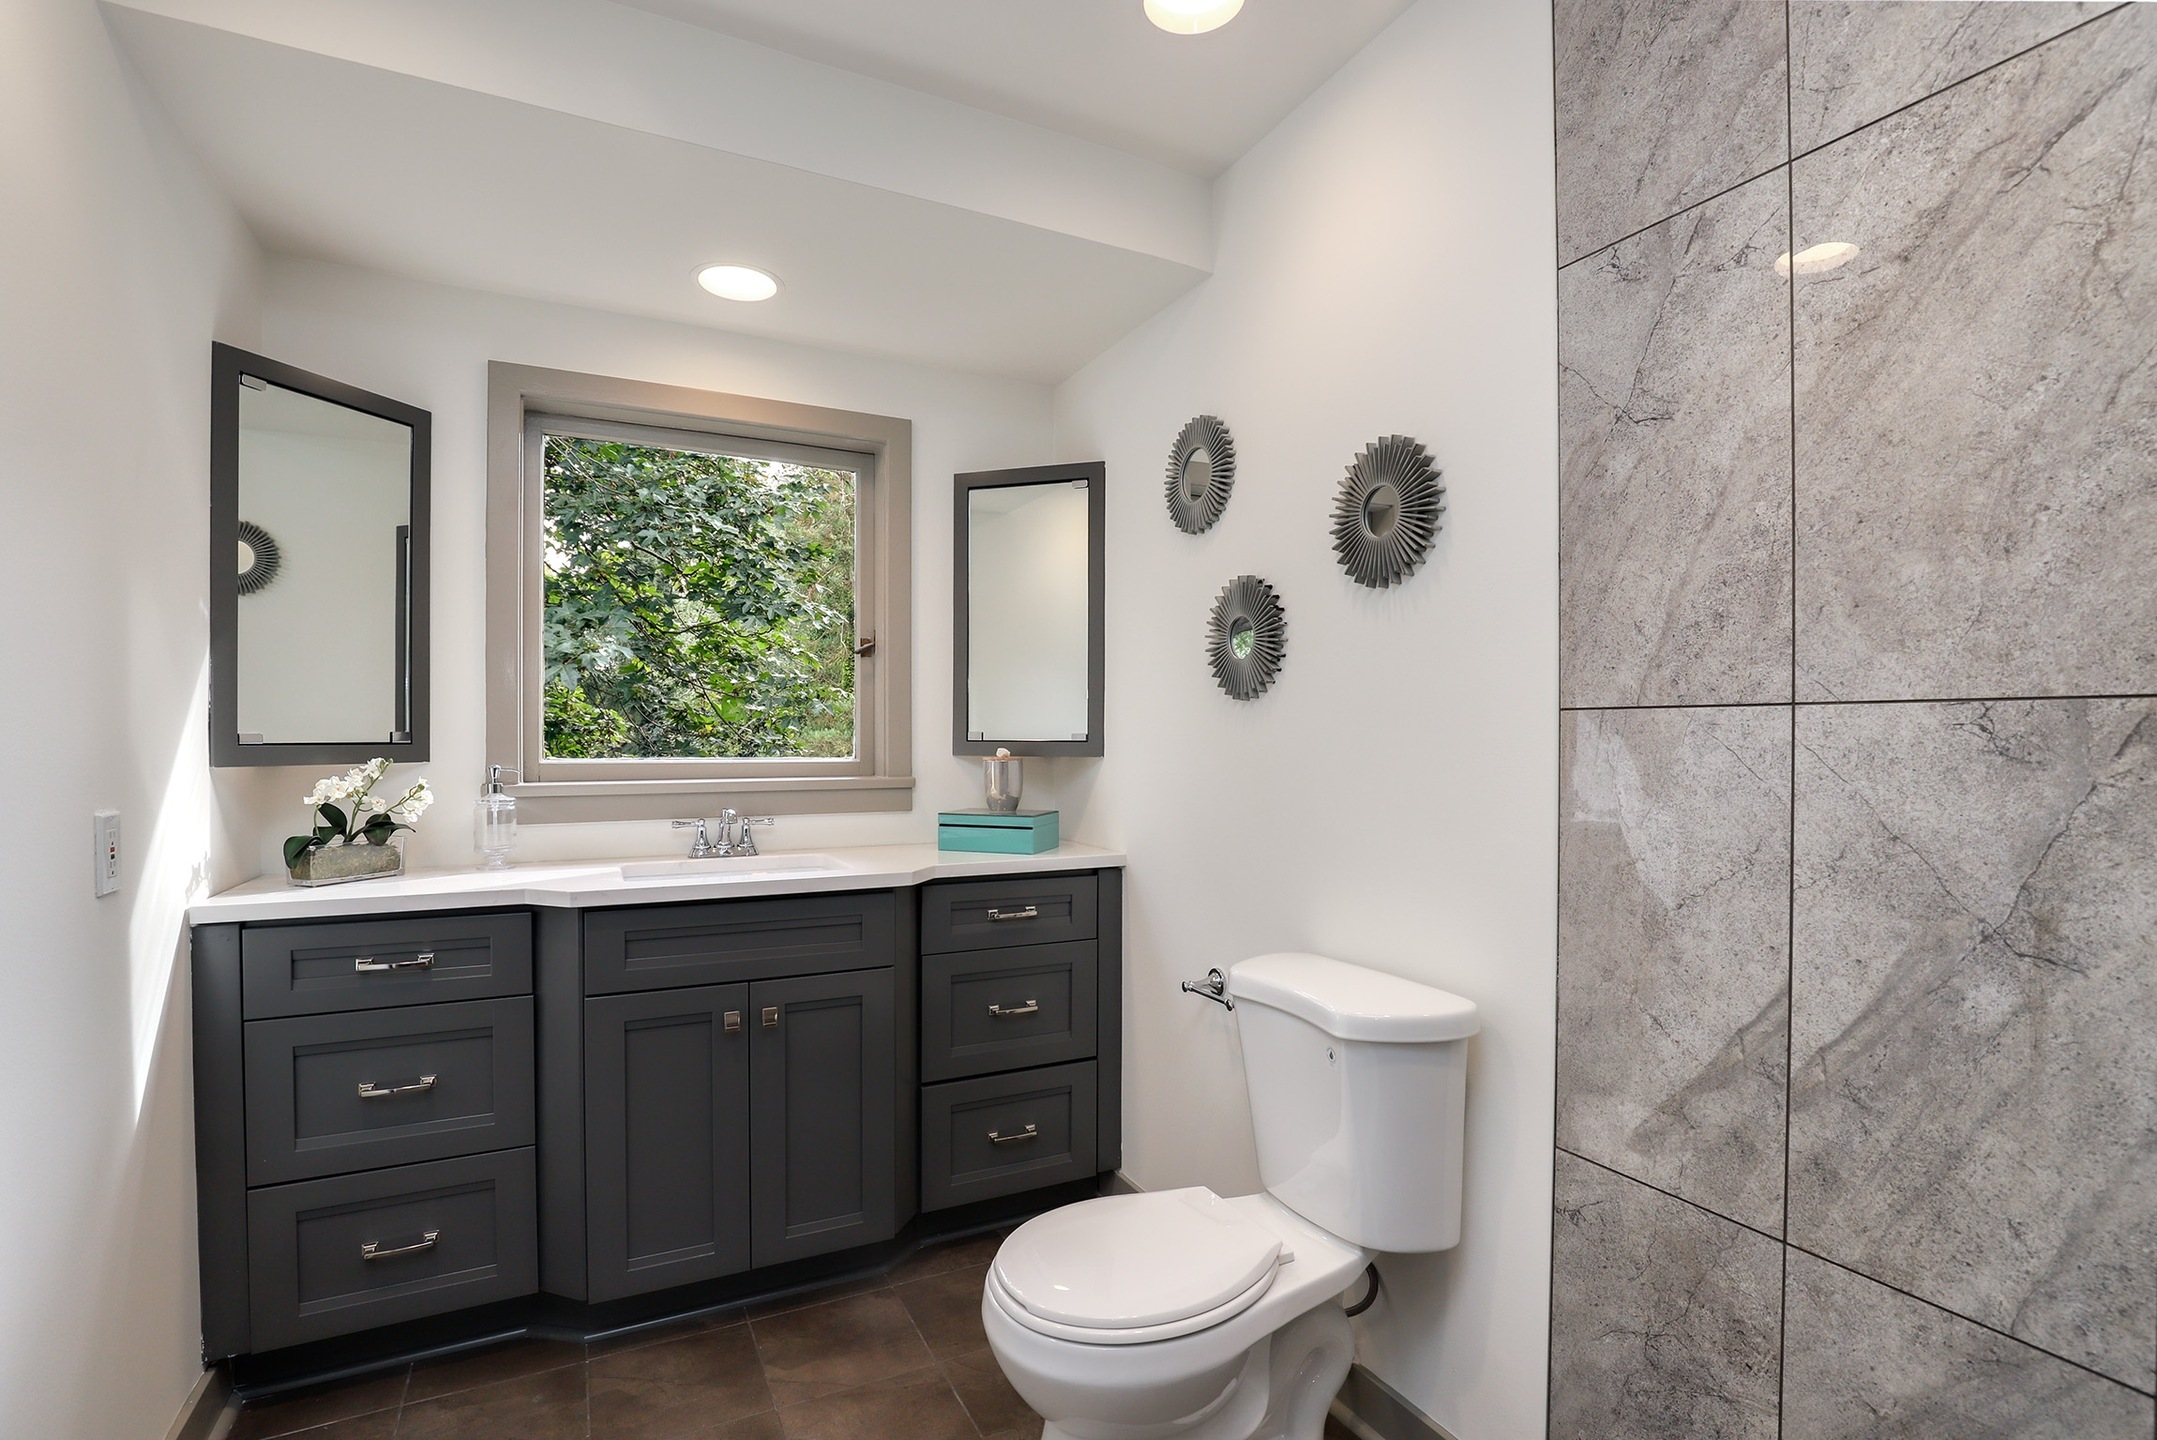 The Home Team & Bathroom Remodels \u2014 The Home Team